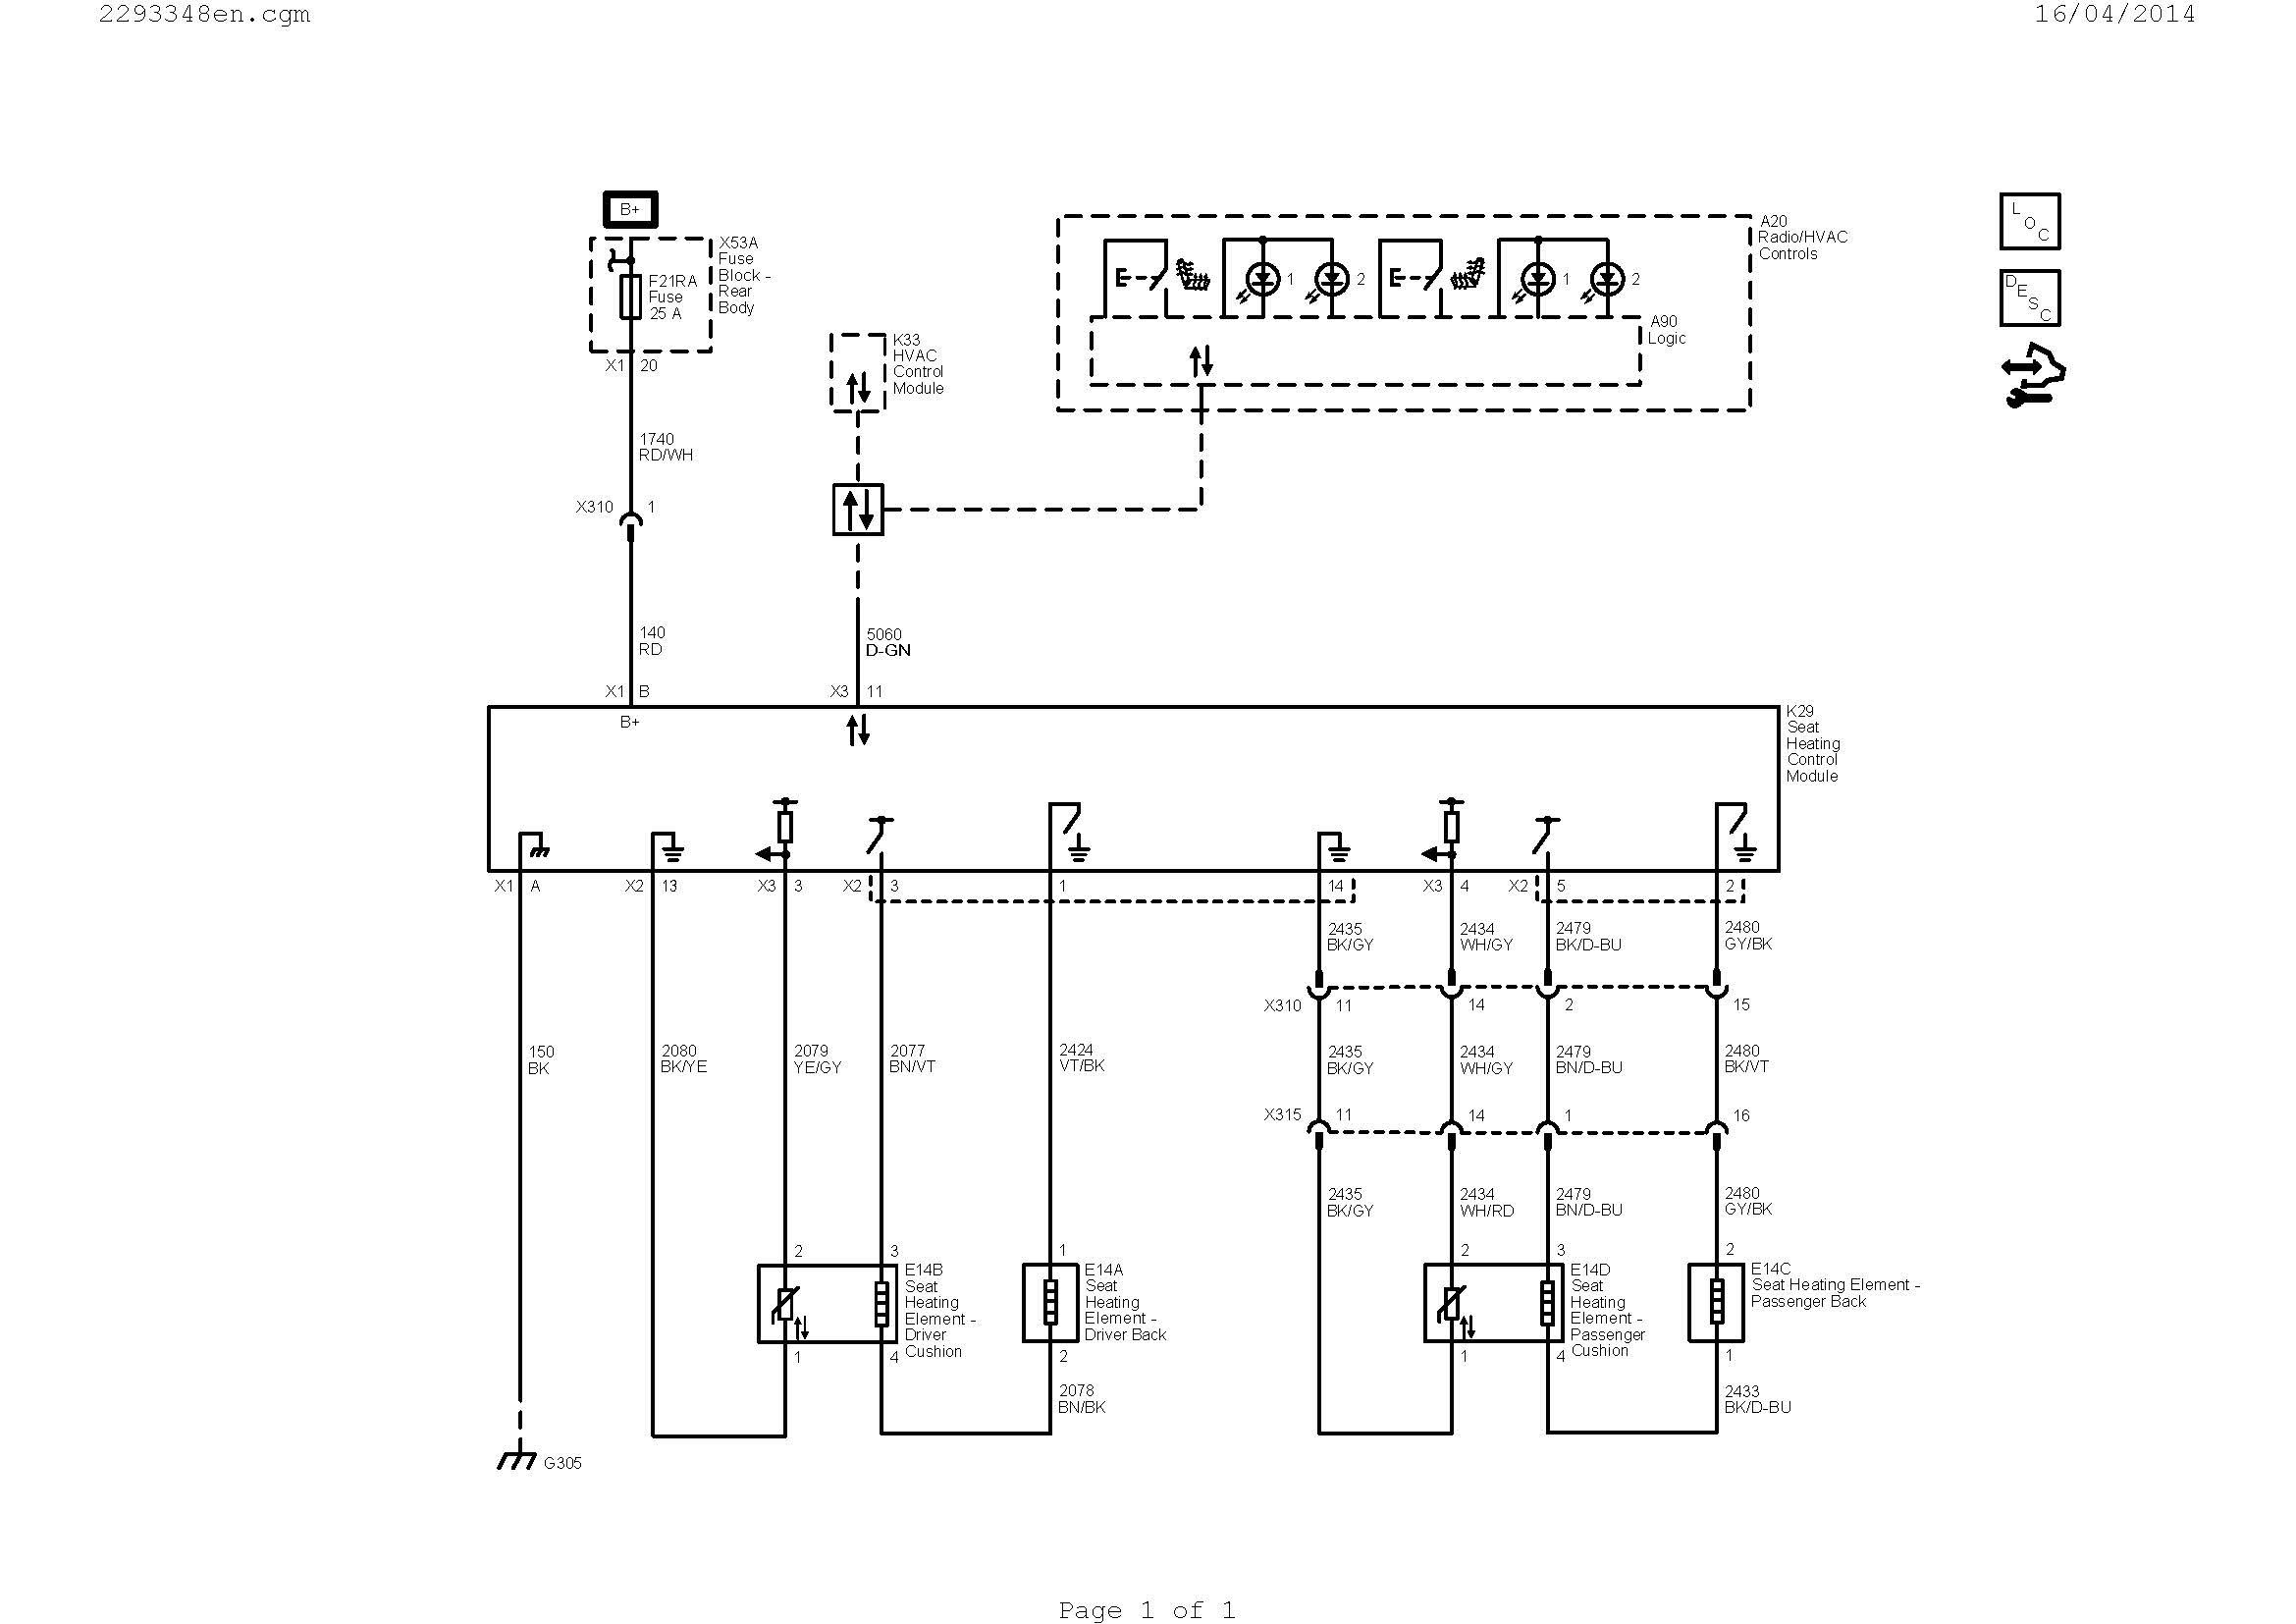 boiler wiring diagram for thermostat Collection-central boiler thermostat wiring diagram Download Wiring Diagrams For Central Heating Refrence Hvac Diagram Best 19-c